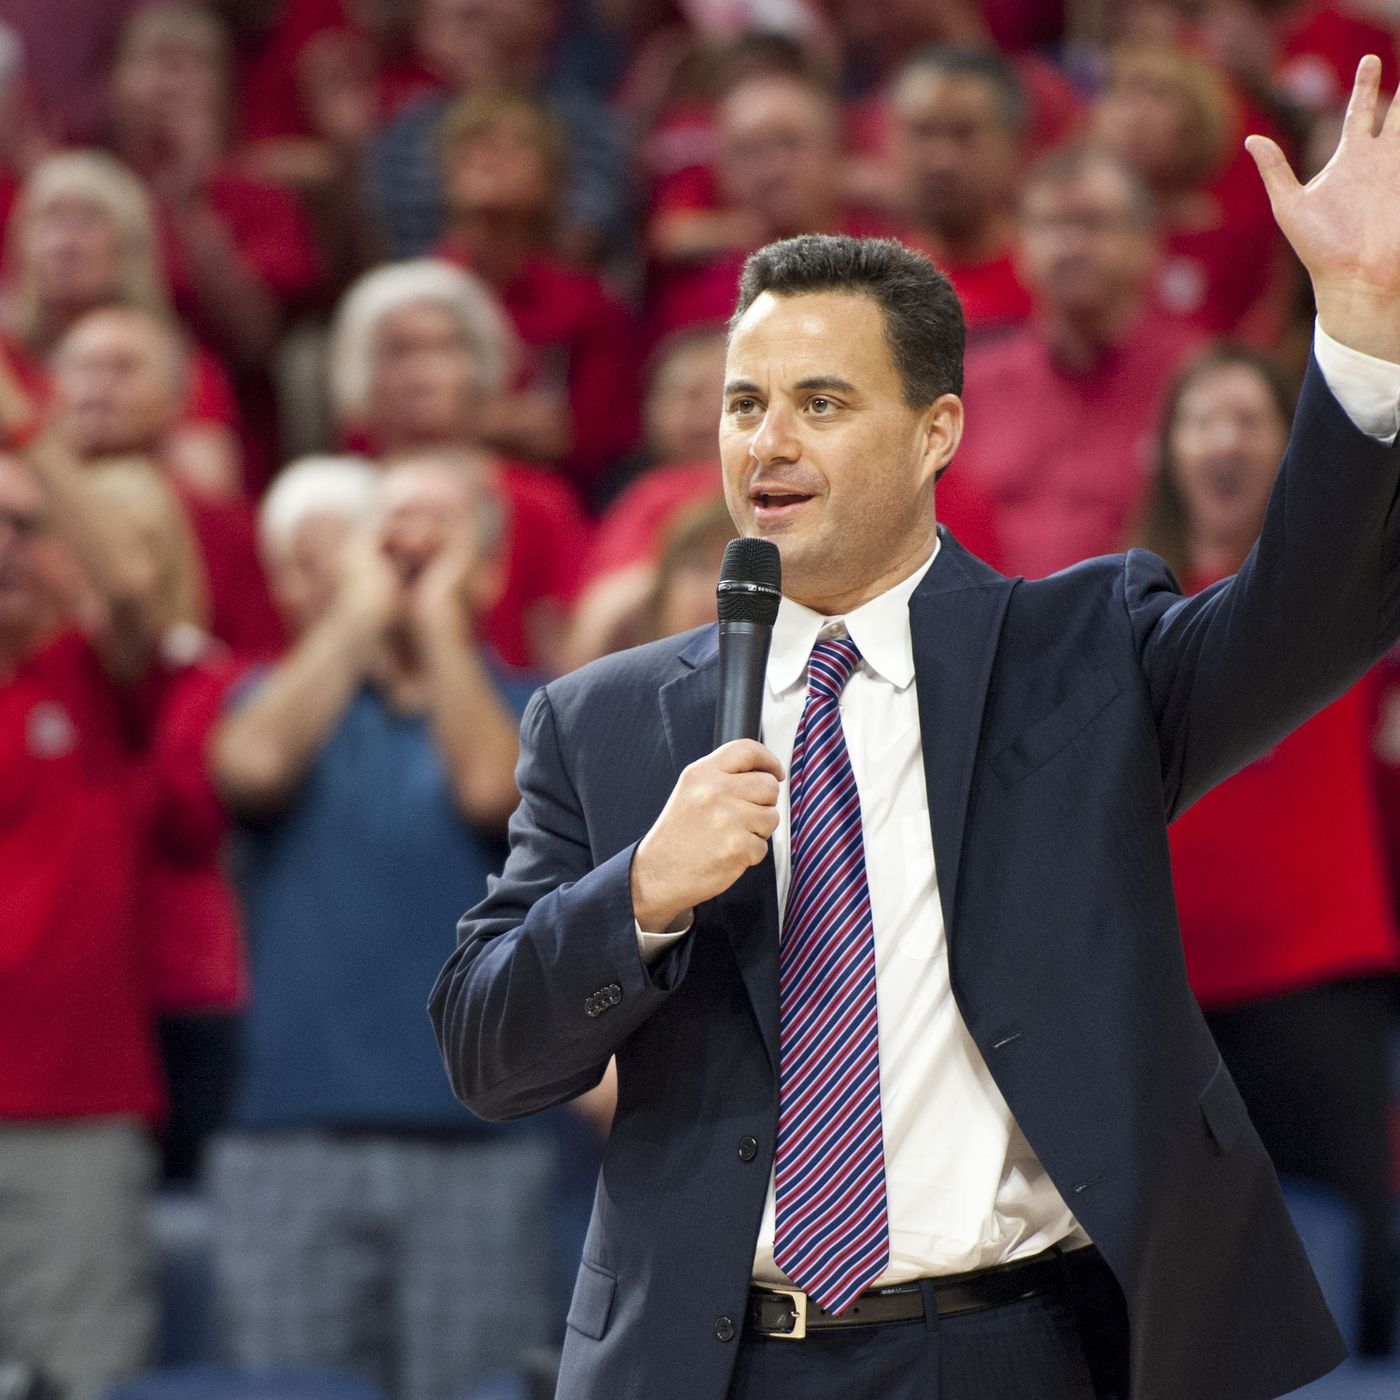 Sean Miller Biography Age Sweat Amy Press Conference Miller Pitt Basketball Brother And Net Worth Informationcradle